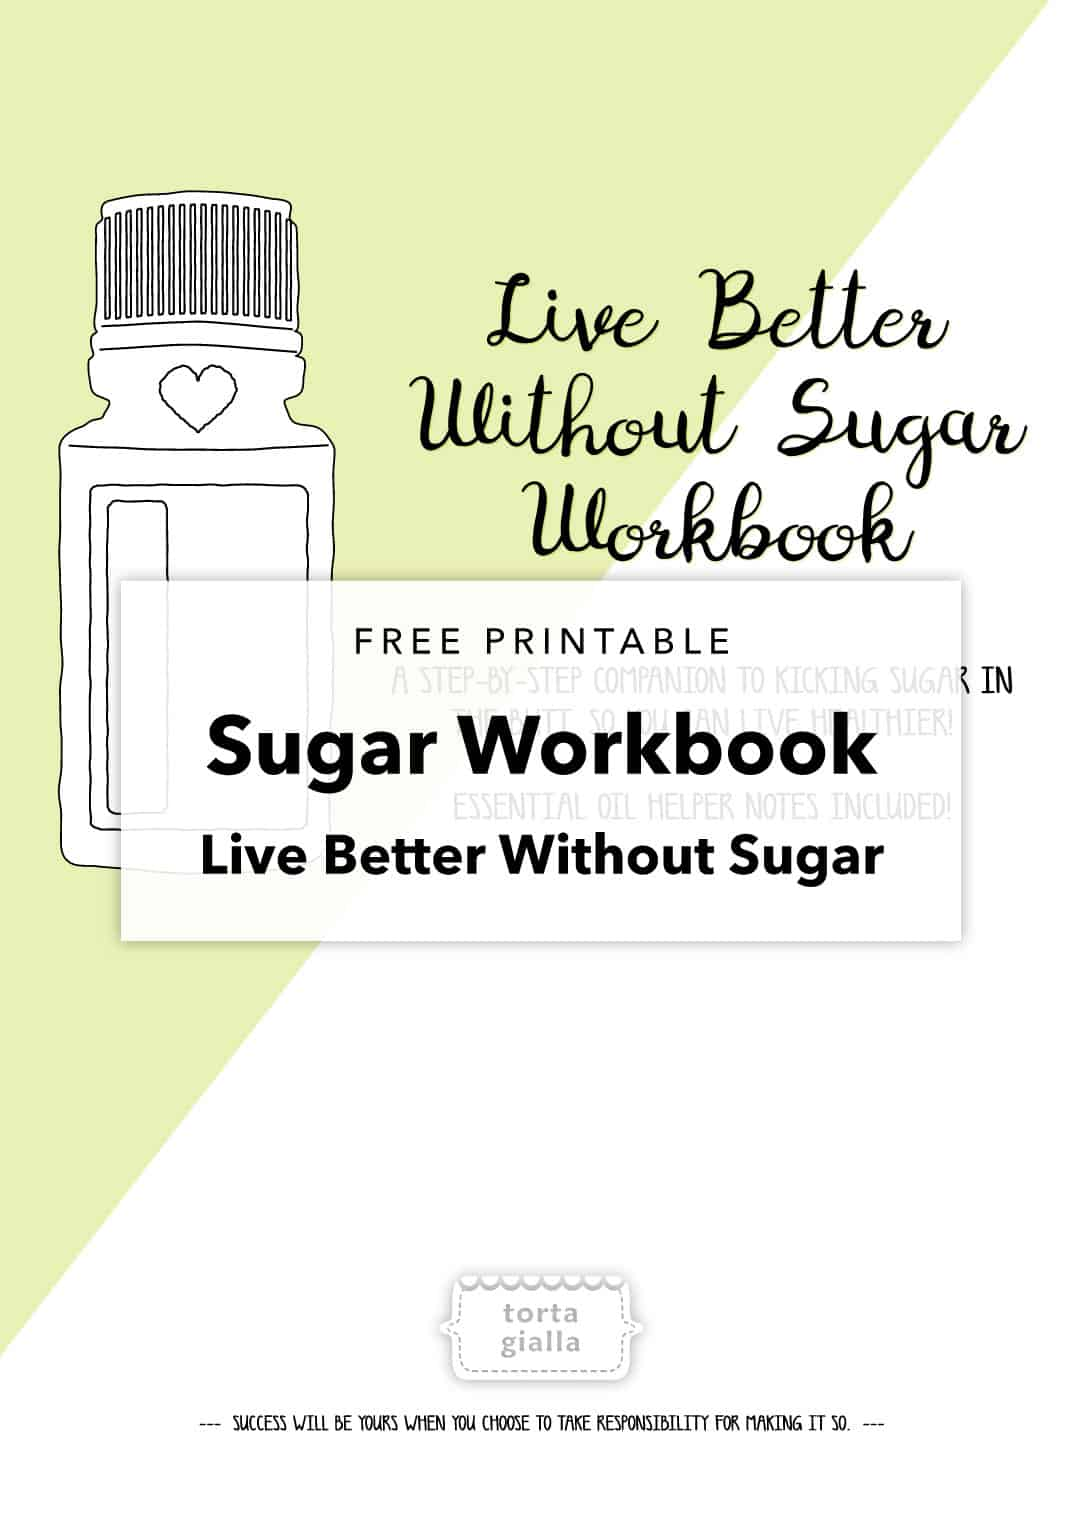 Free Printable // Live Better Without Sugar Workbook // Help yourself kick sugar in the butt and live a better, healthier life!